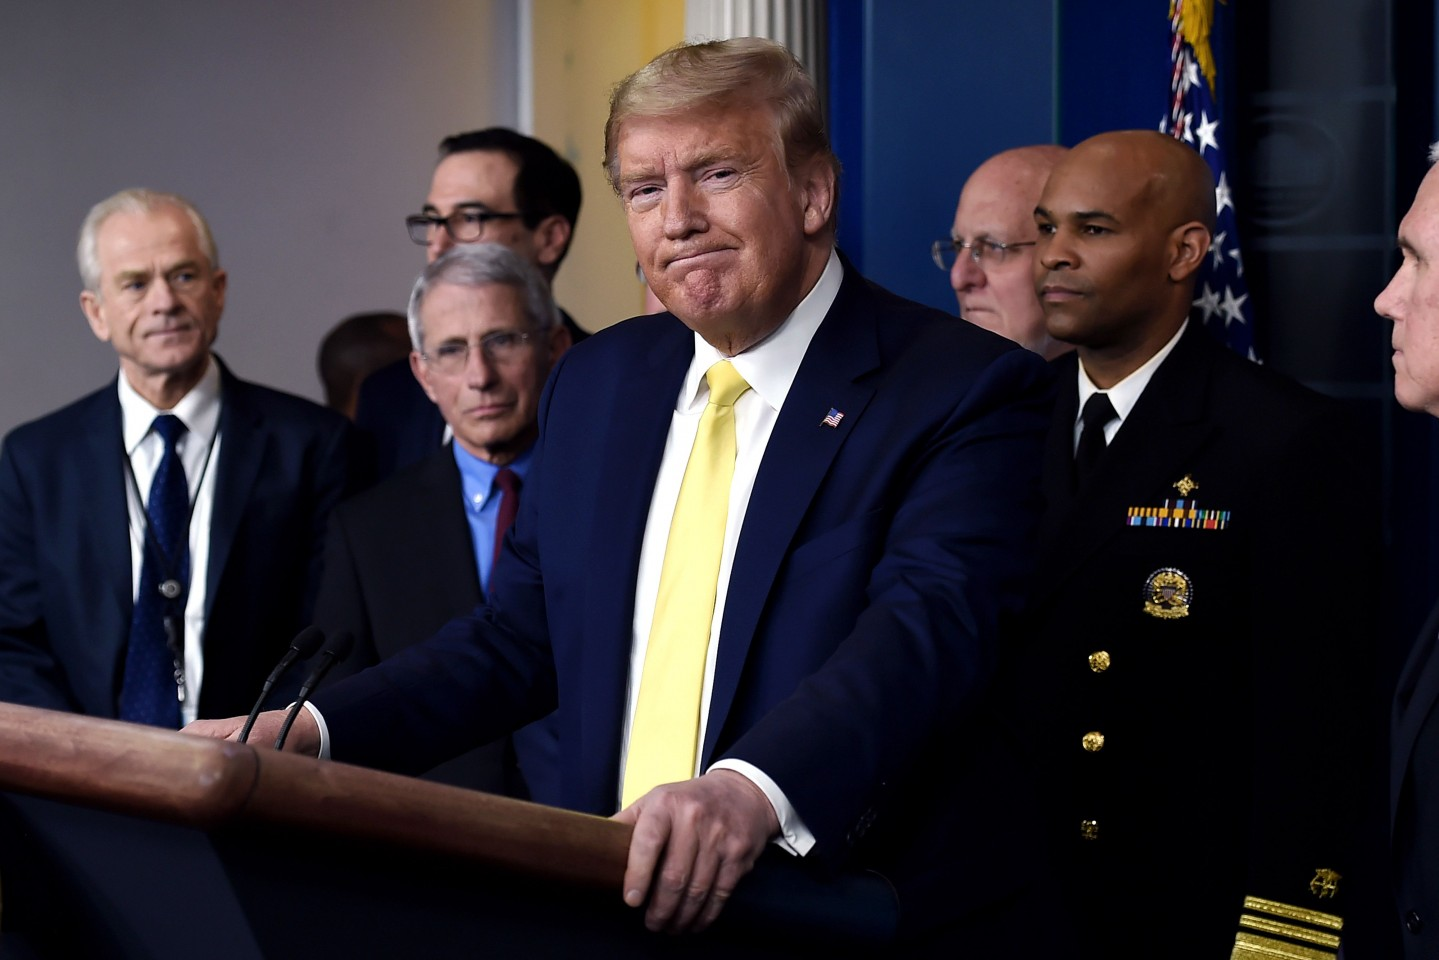 In this file photo, US President Donald Trump speaks about the Covid-19 pandemic alongside members of the Coronavirus Task Force in the Brady Press Briefing Room at the White House in Washington, D.C., on 9 March 2020. (Olivier Douliery/AFP)